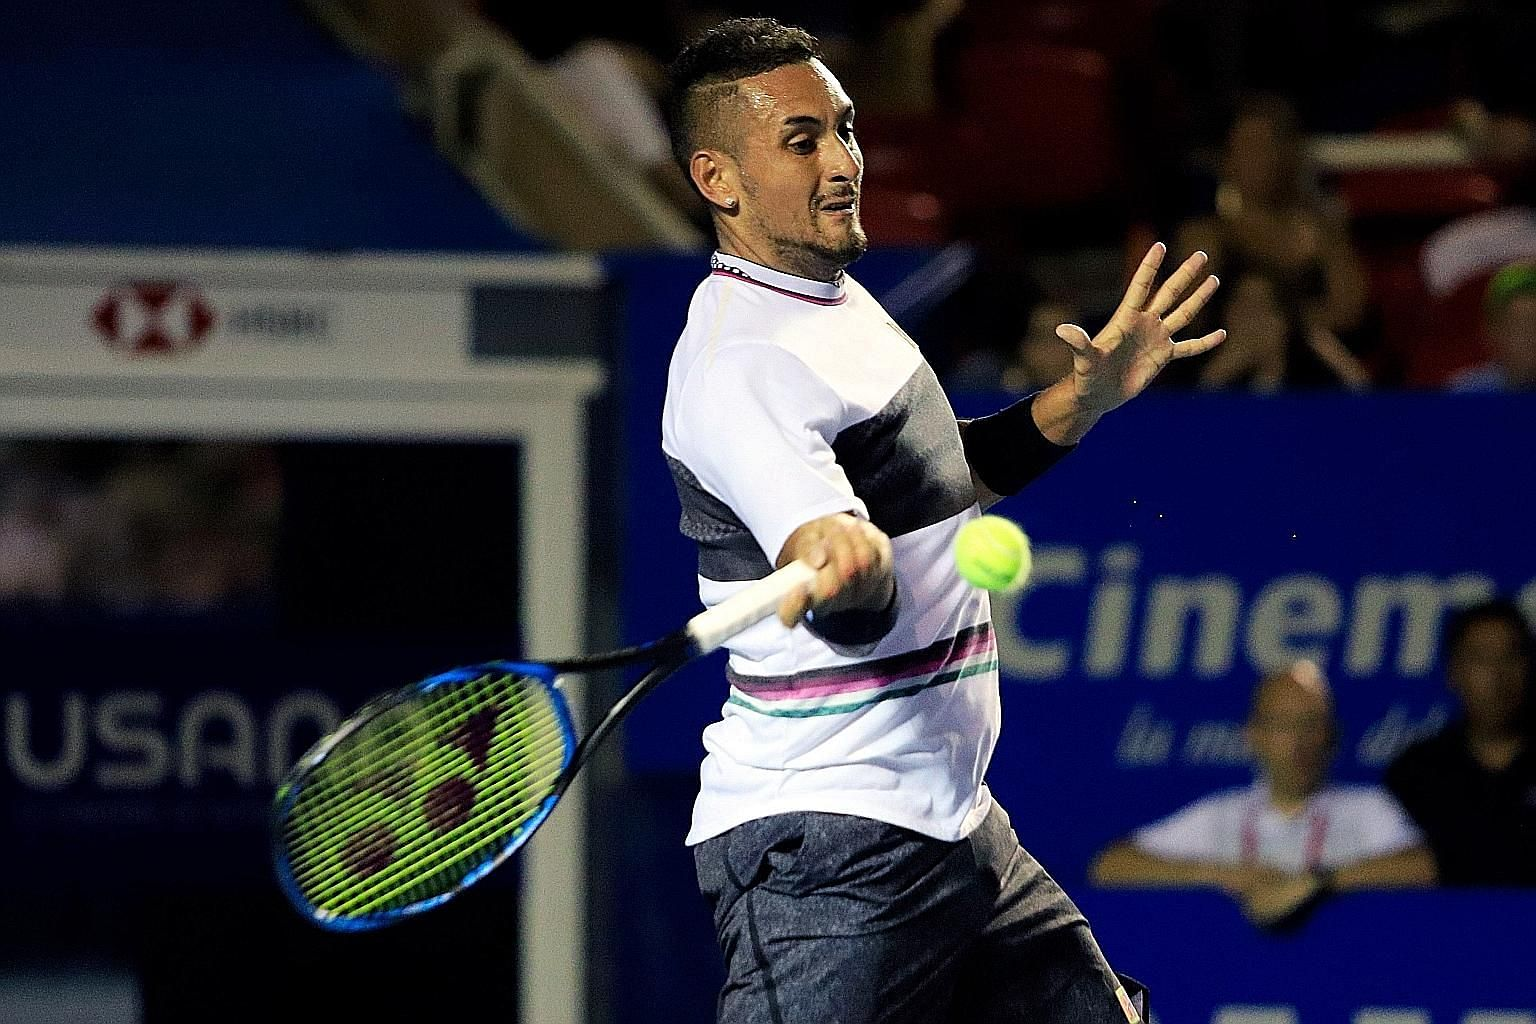 """Nick Kyrgios says he served well, made a lot of drop shots and played the big points well against his """"super-fit"""" opponent, world No. 3 Alexander Zverev."""